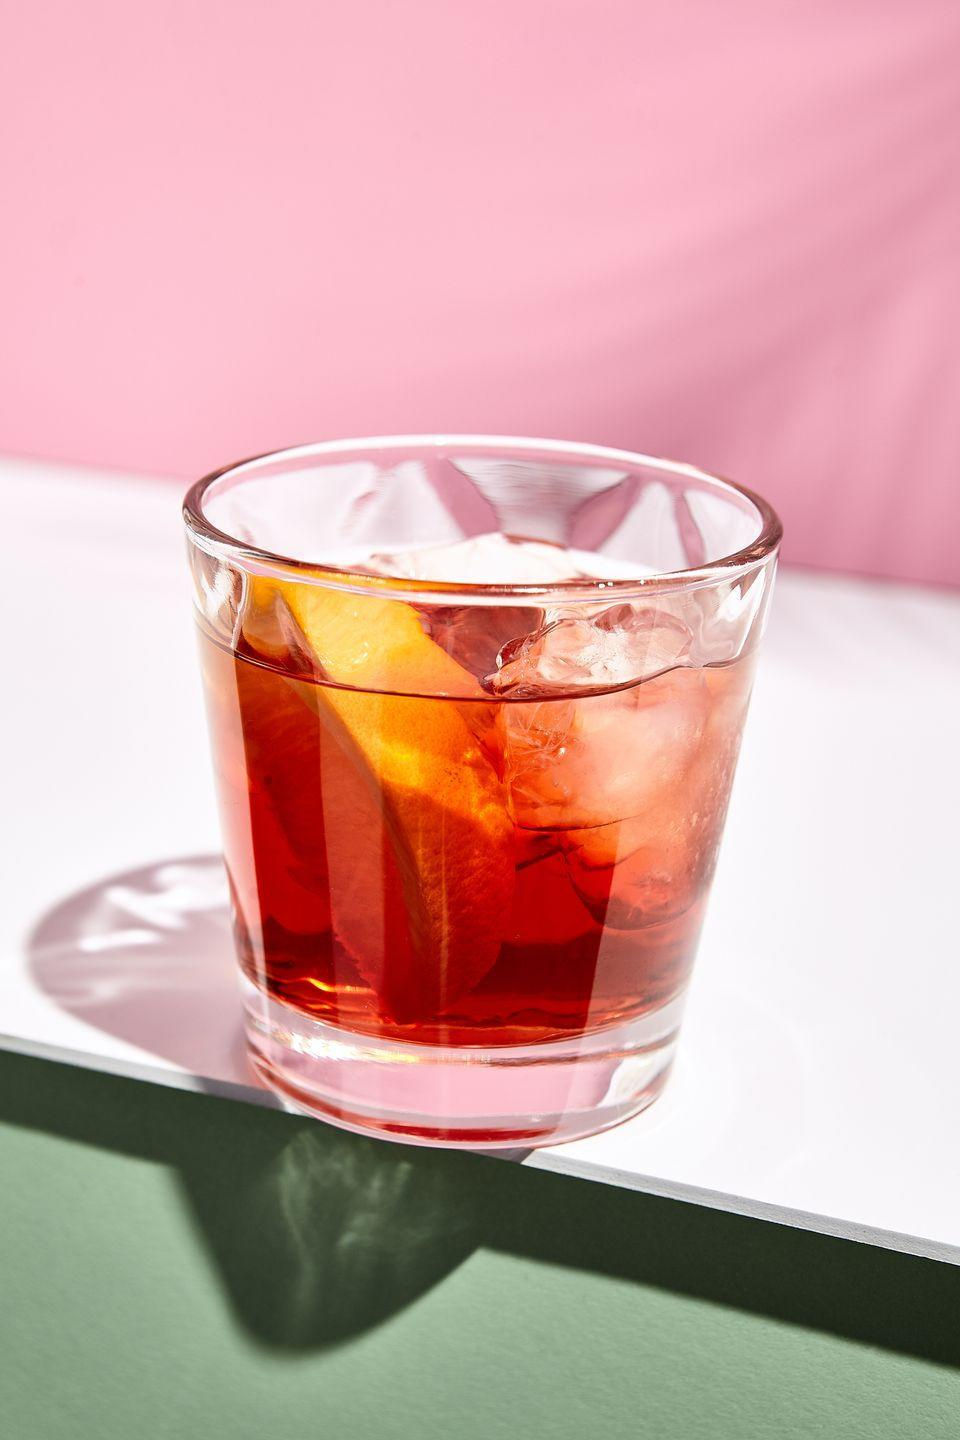 "<p>A sophisticated aperitif, the <a href=""https://www.delish.com/uk/cocktails-drinks/a28843819/negroni-recipe/"" rel=""nofollow noopener"" target=""_blank"" data-ylk=""slk:Negroni"" class=""link rapid-noclick-resp"">Negroni</a> is a classic Italian drink. Dating back to the early 1900's the drink was thought of as being a balance of both the good (bitters) and bad (gin) things in life. Some may say Negroni drinkers live life on the edge a little. If that's you, it means you're a practical thinker and a good listener, yet creative in your decisions.</p>"